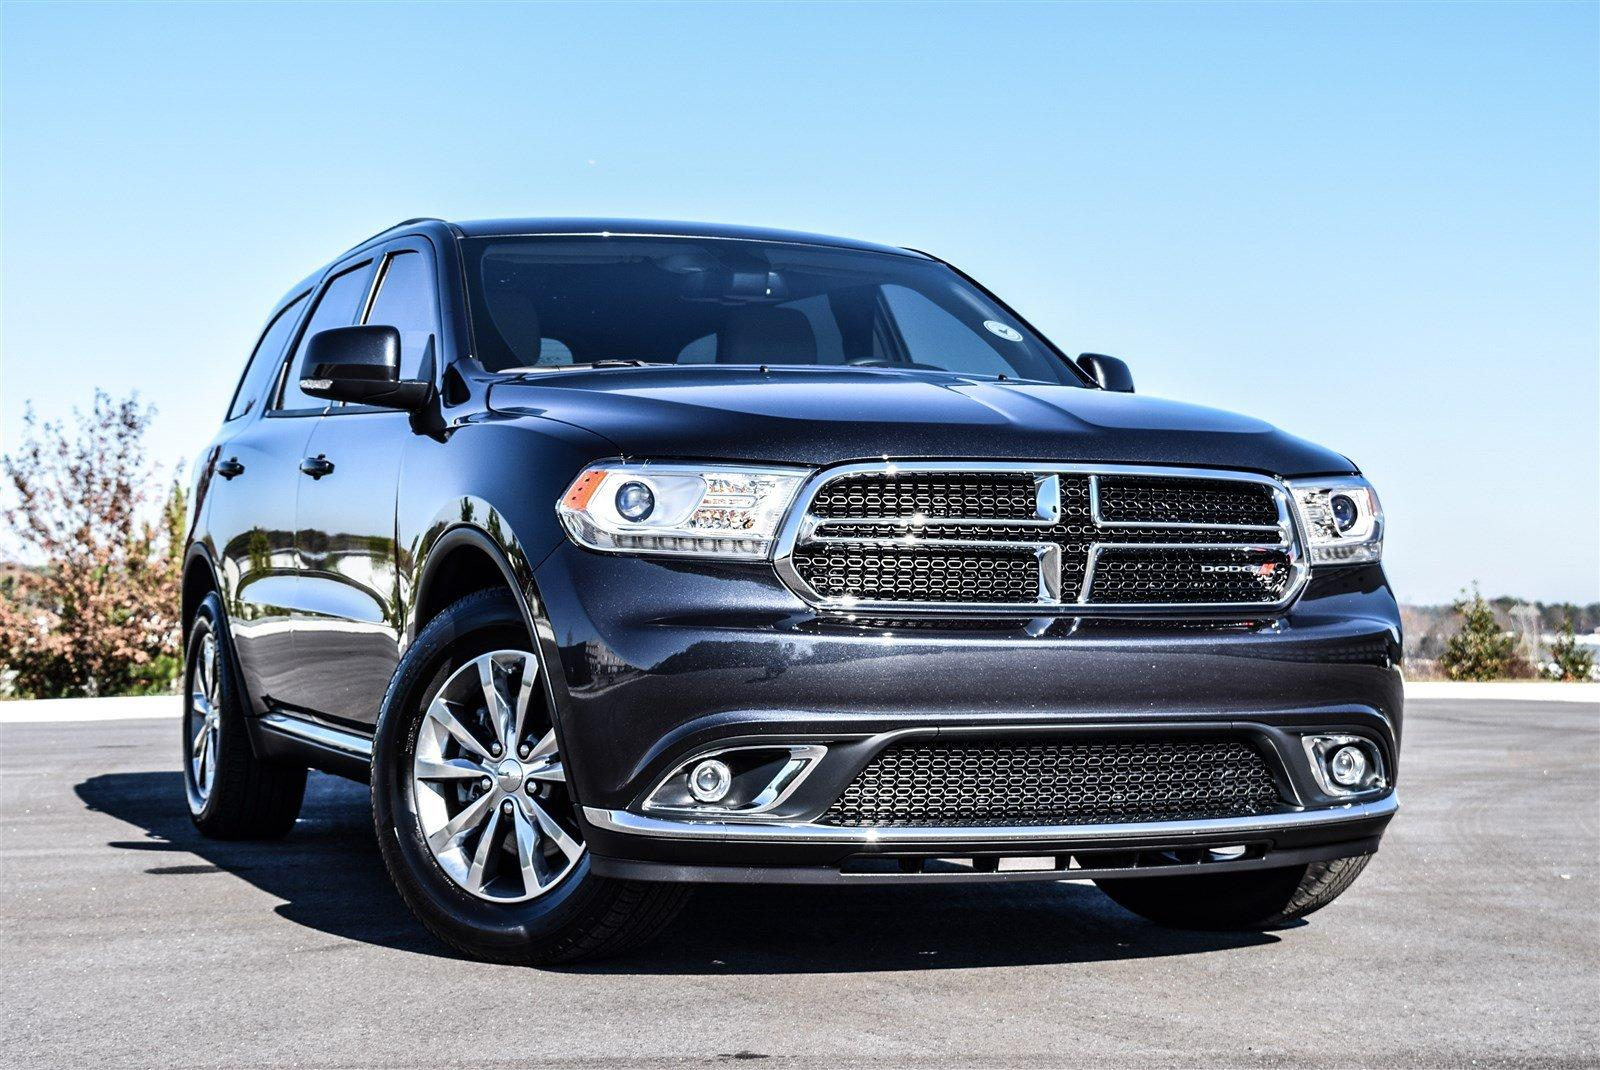 2015 Dodge Durango Limited Stock # 702266 For Sale Near